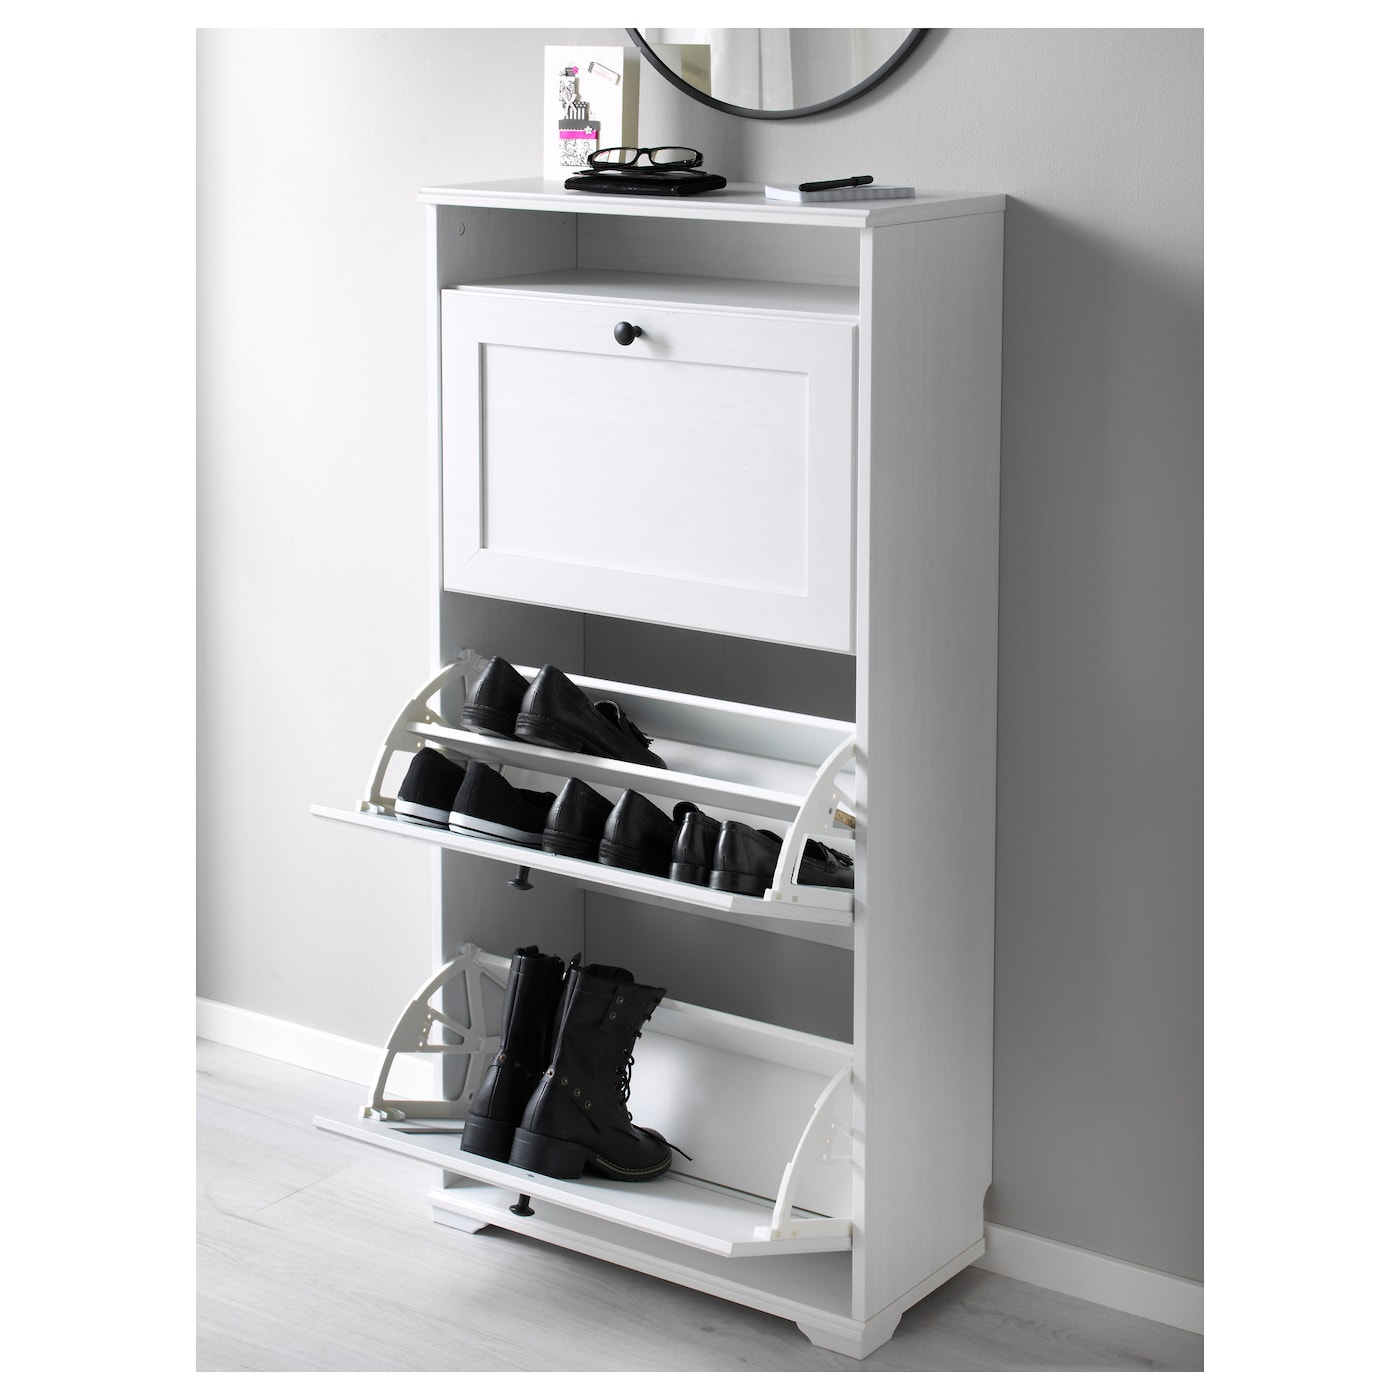 BRUSALI Shoe cabinet with 3 compartments White 61x130 cm - IKEA